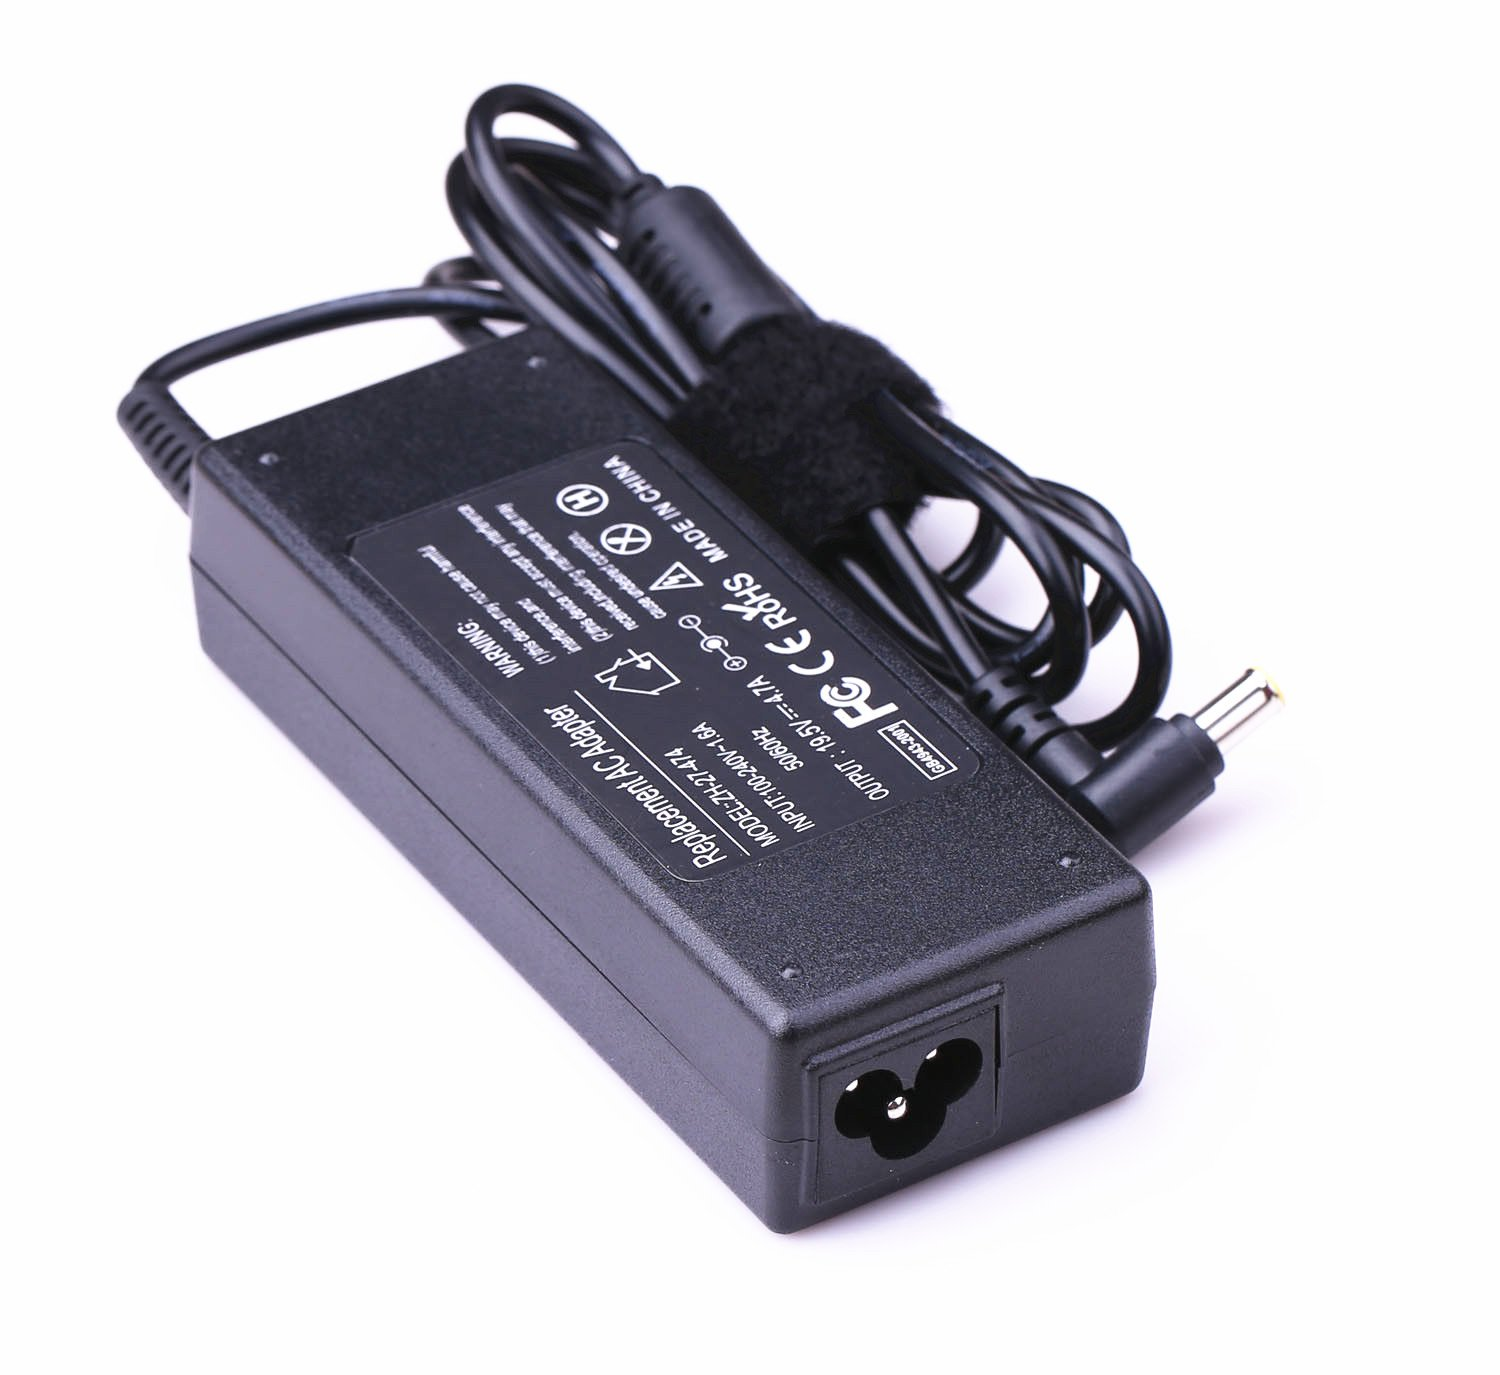 AC Adapter for 19.5V Sony Bravia TV Charger KDL-32 KDL-40 W600B W650A W674A W700B W800B; KDL55W650D, KDL48W600B, KDL-42W650A, KDL-40W600B, KDL-32W700B ...